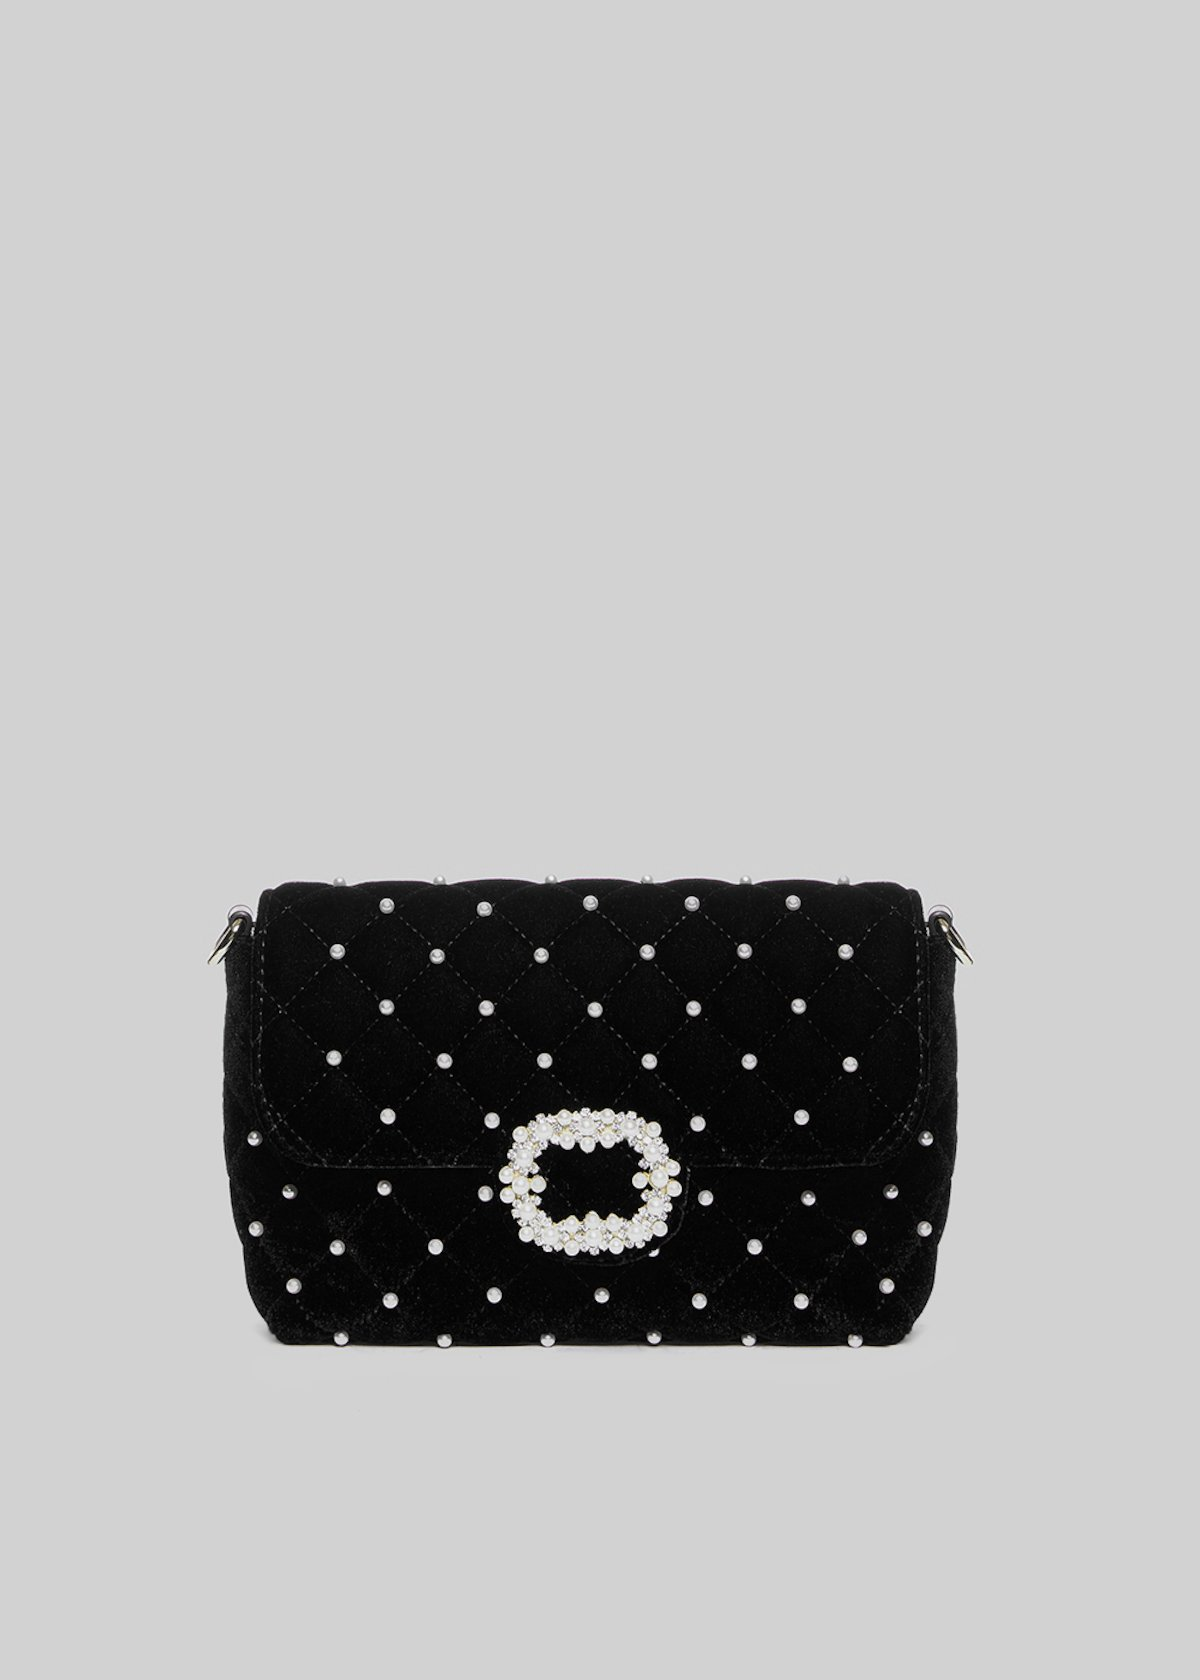 Blinny clutch bag with central buckle of pearls - Black